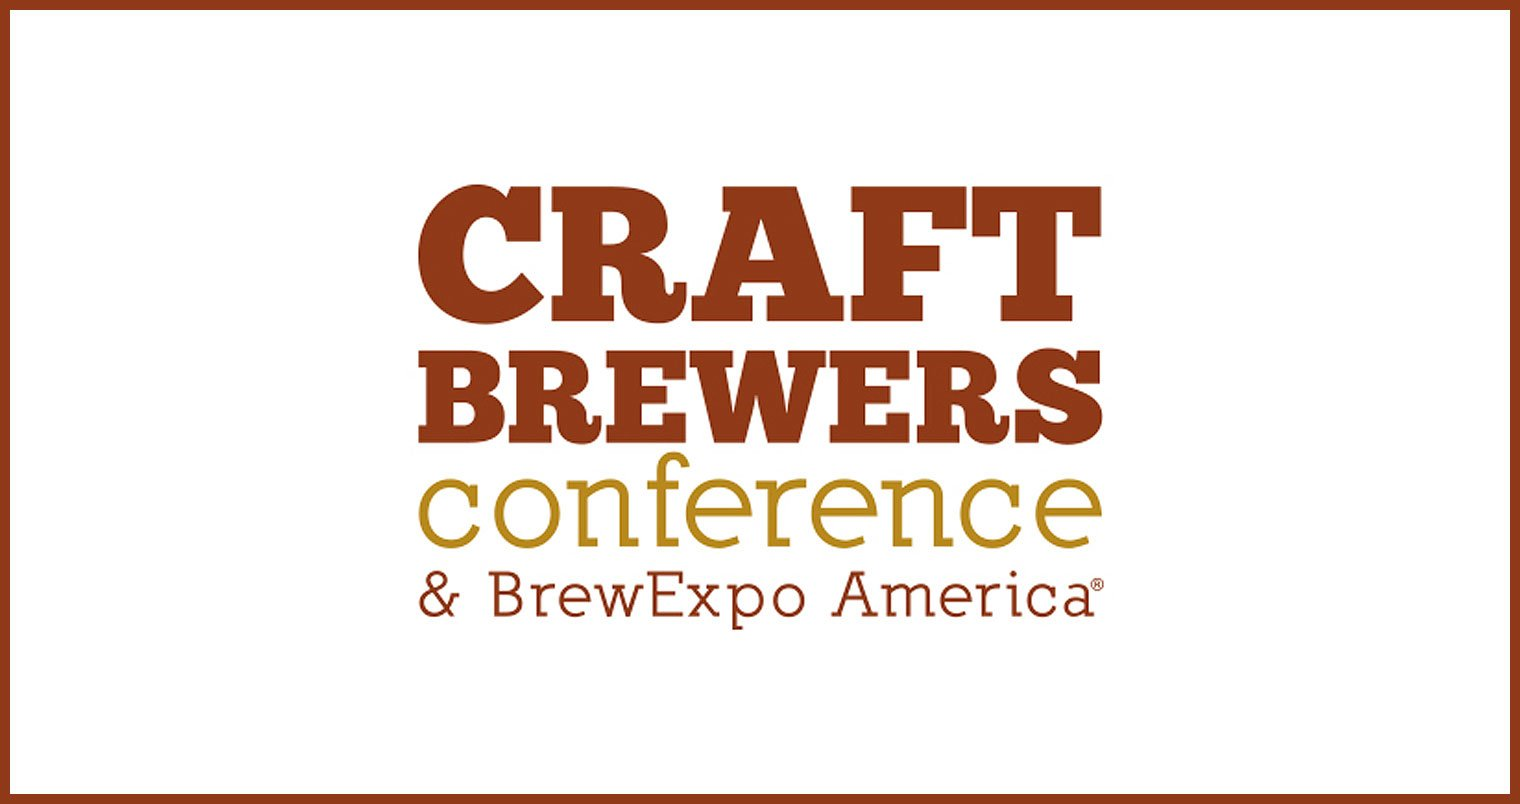 35th Annual Craft Brewers Conference Amp Brewexpo America